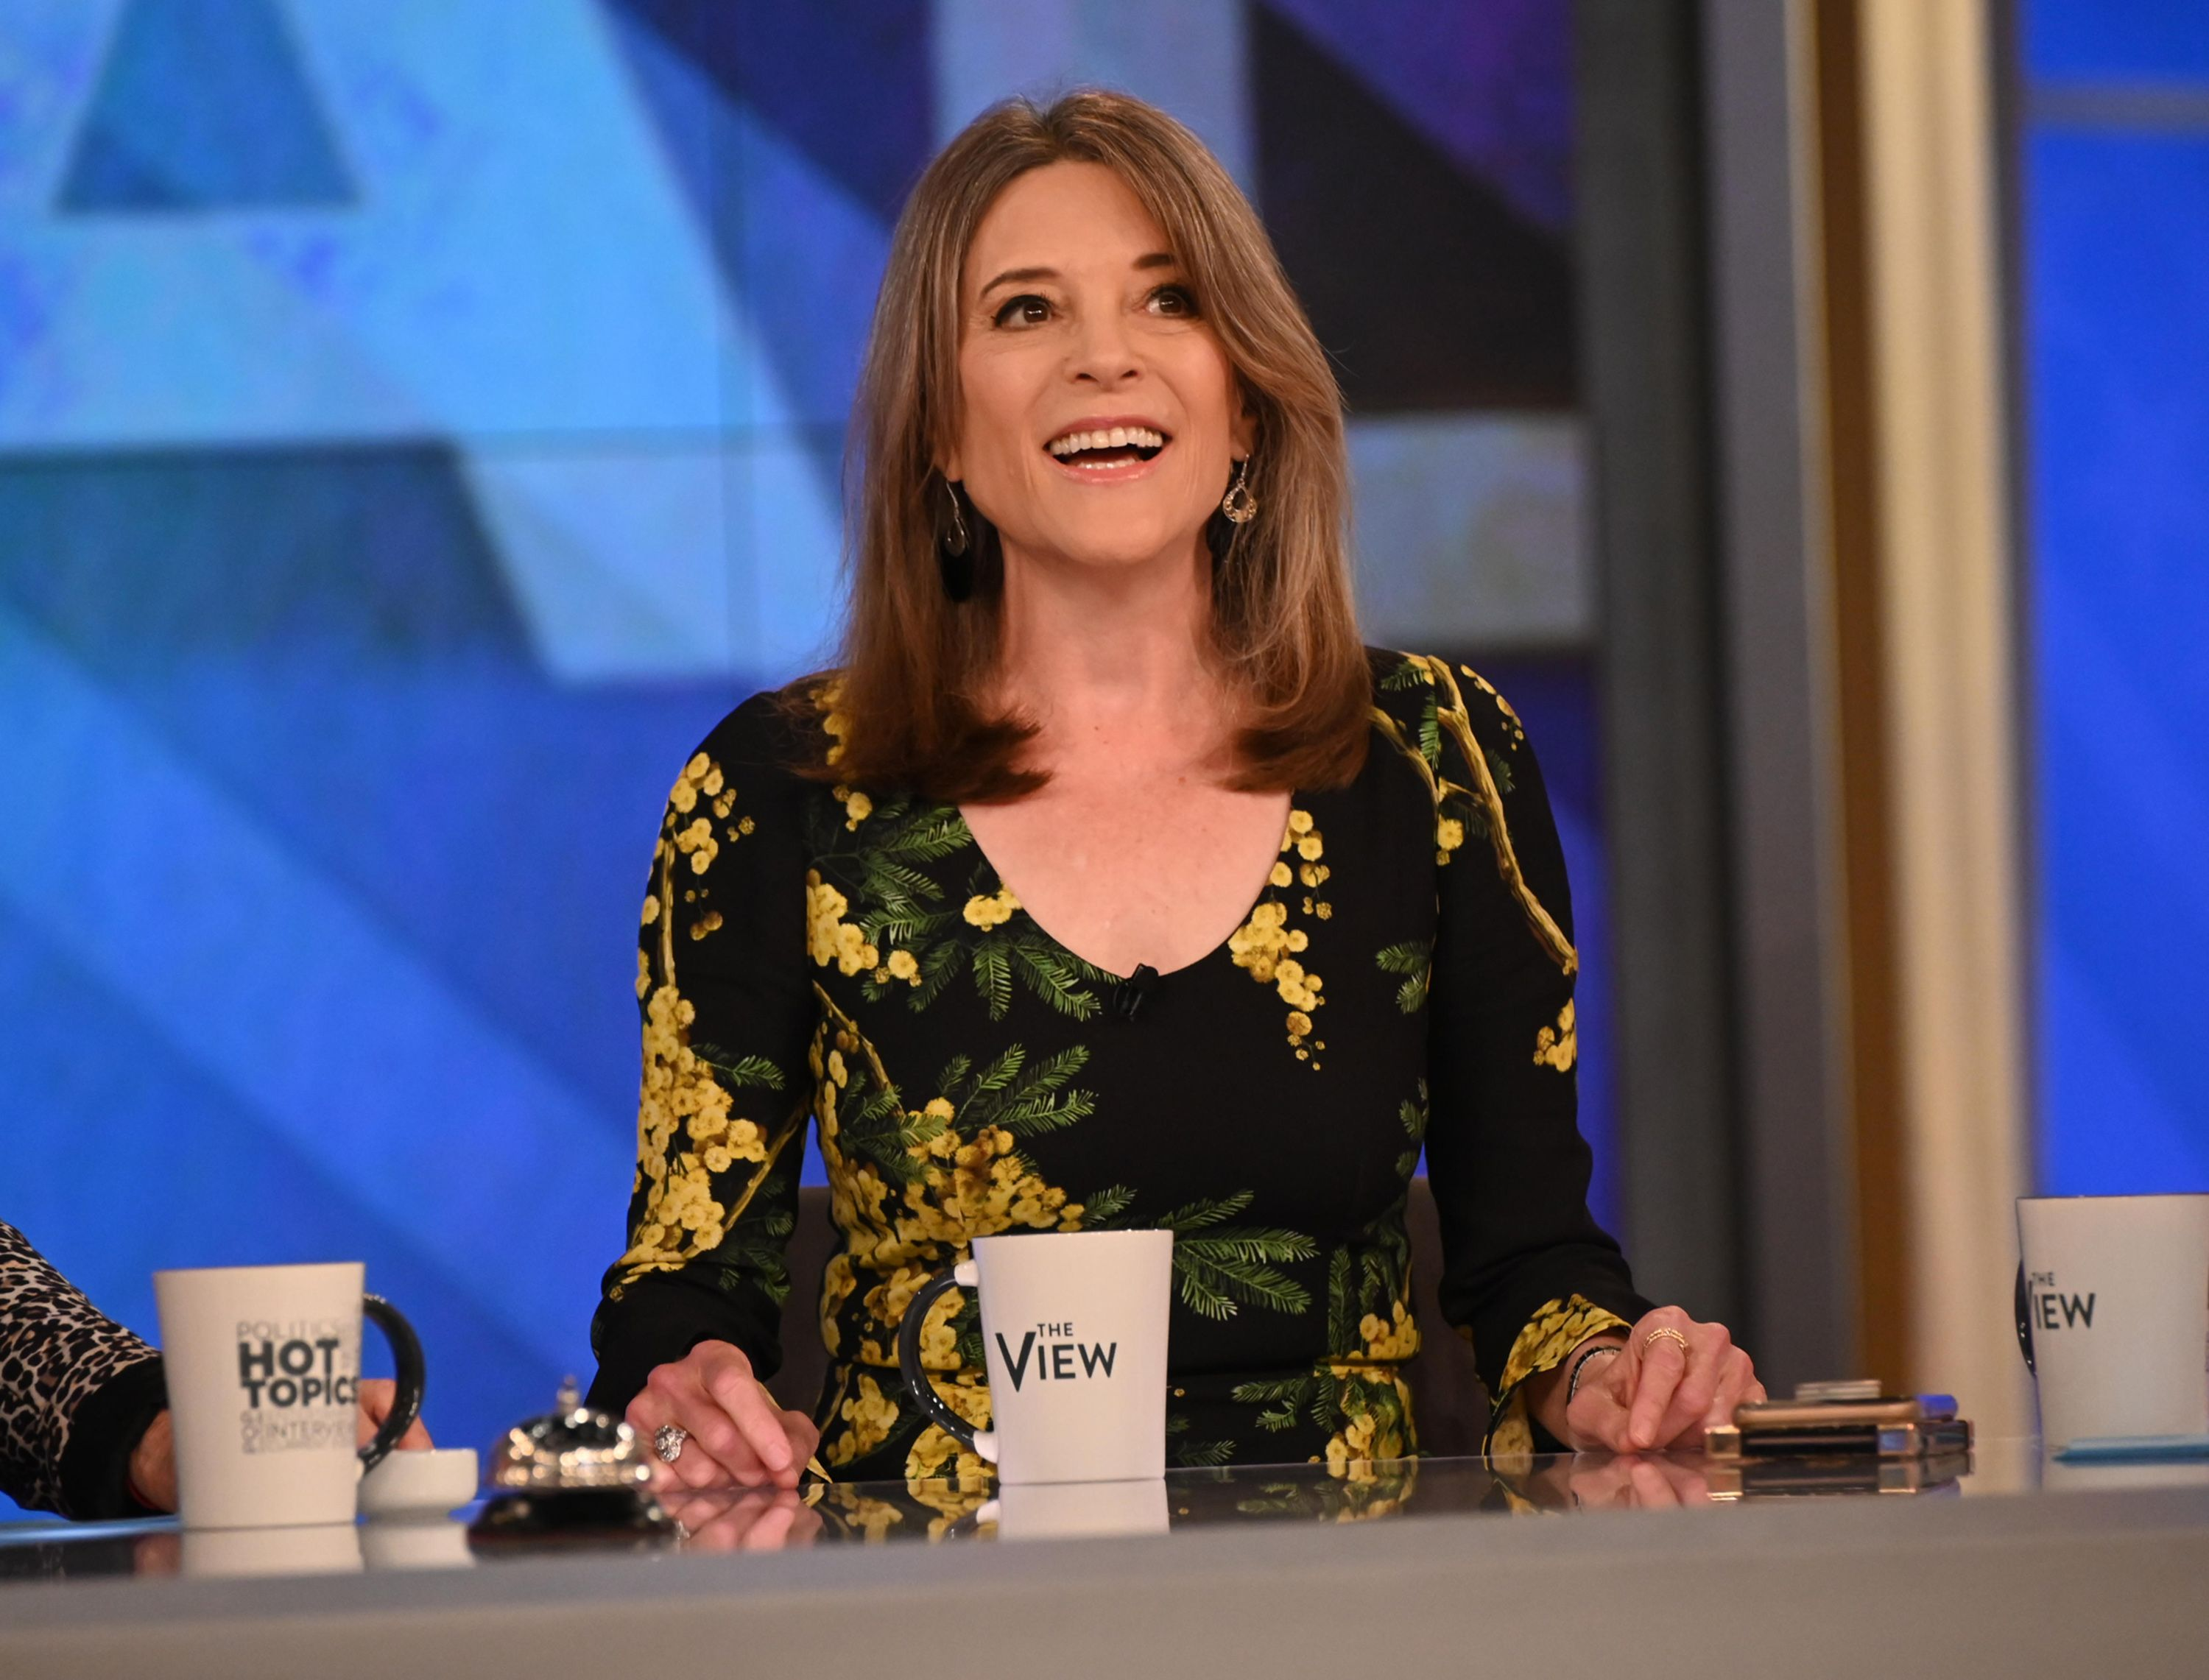 Marianne Williamson Could Be America's First Single President in More Than 100 Years